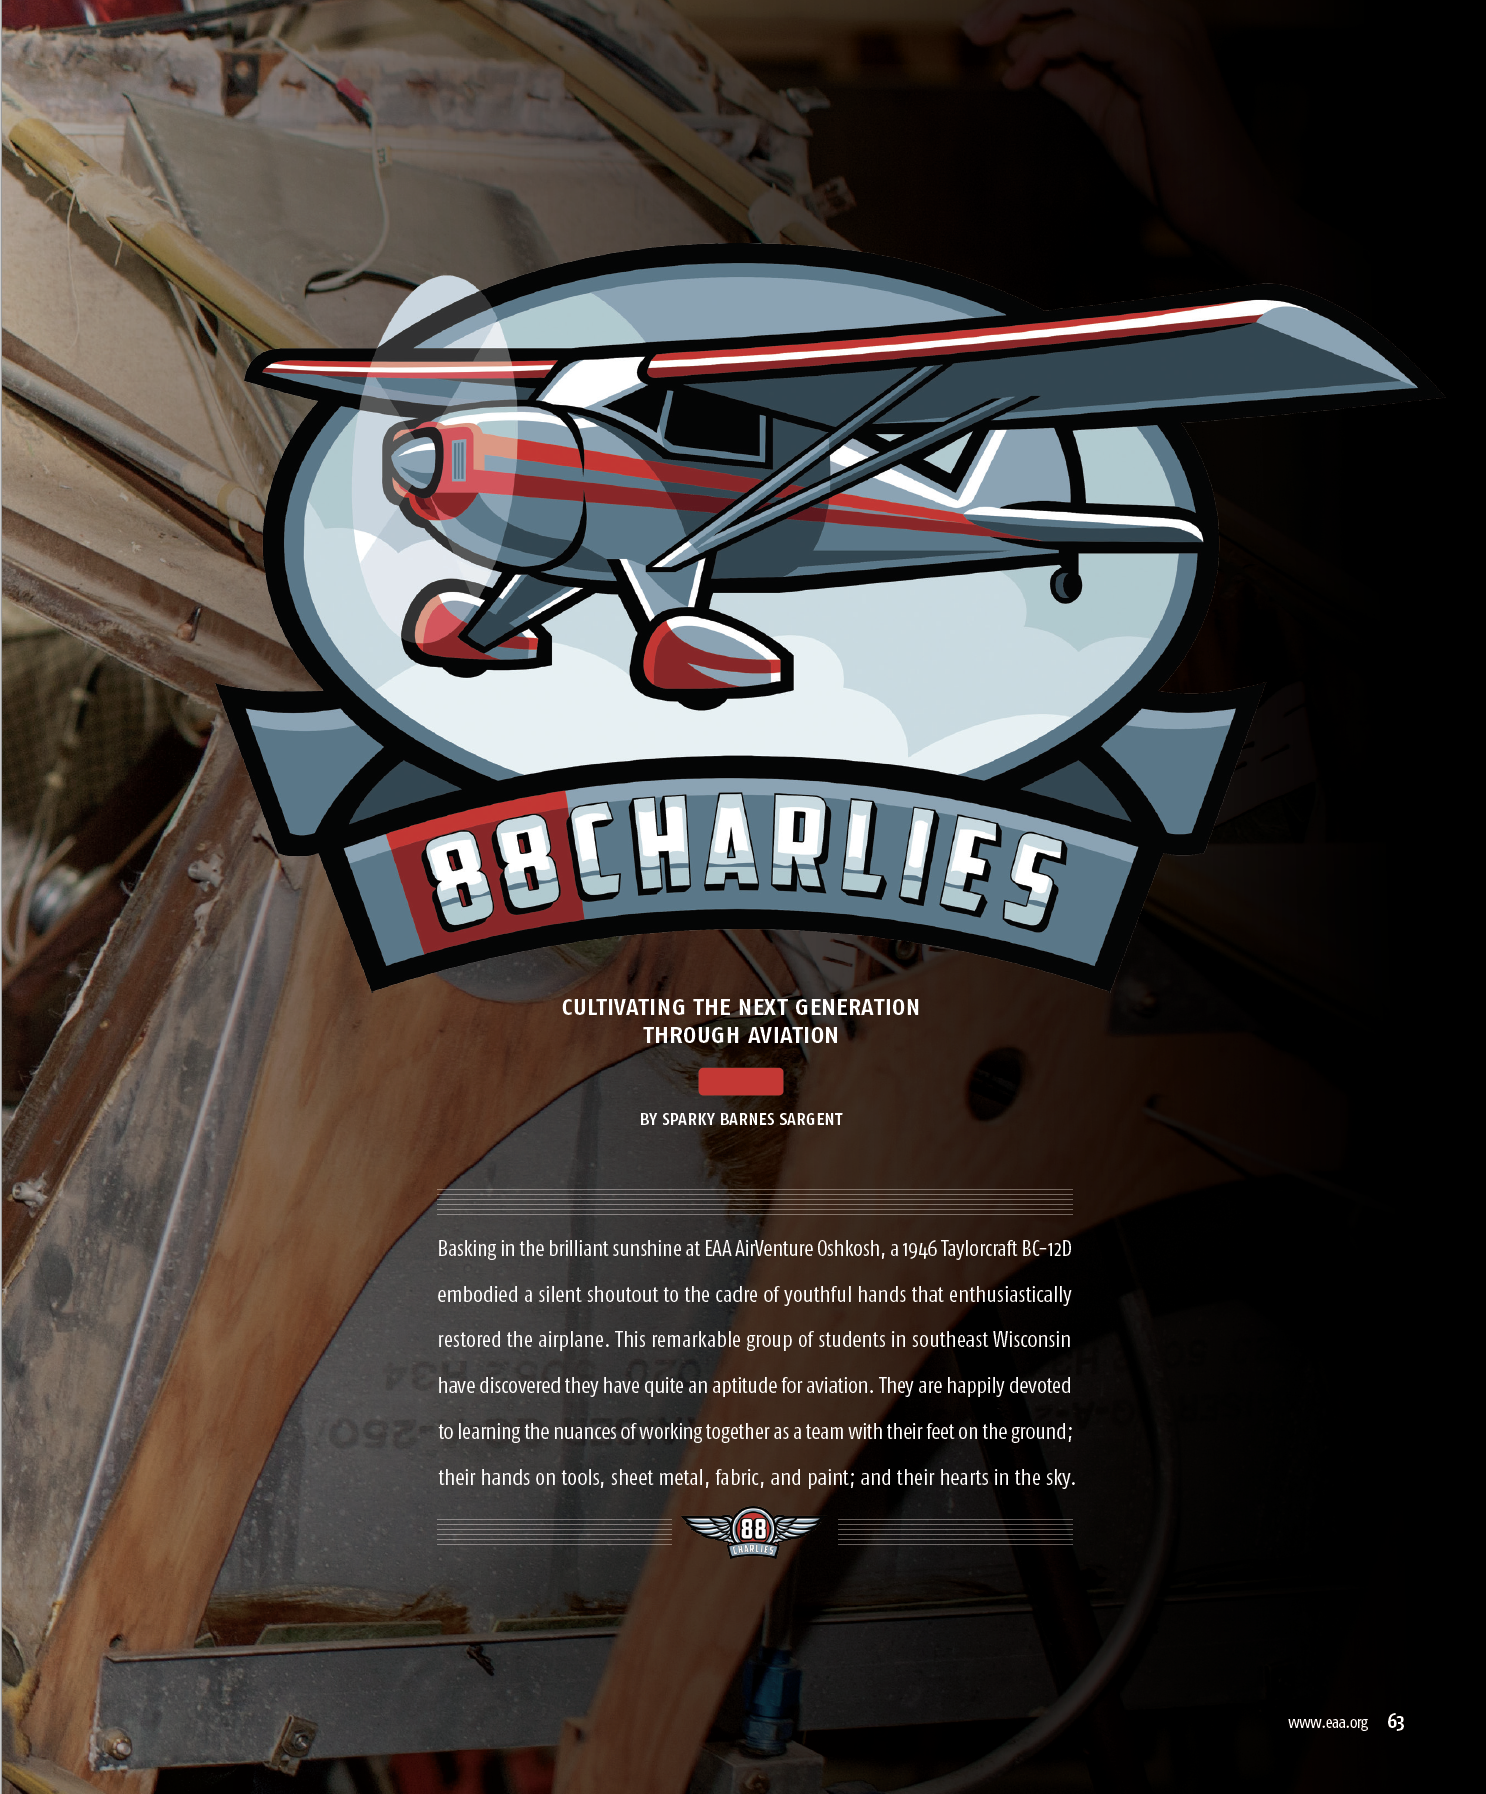 88CHARLIES was featured in the May 2018 issue of SportAviation! Click the image to read the full article!